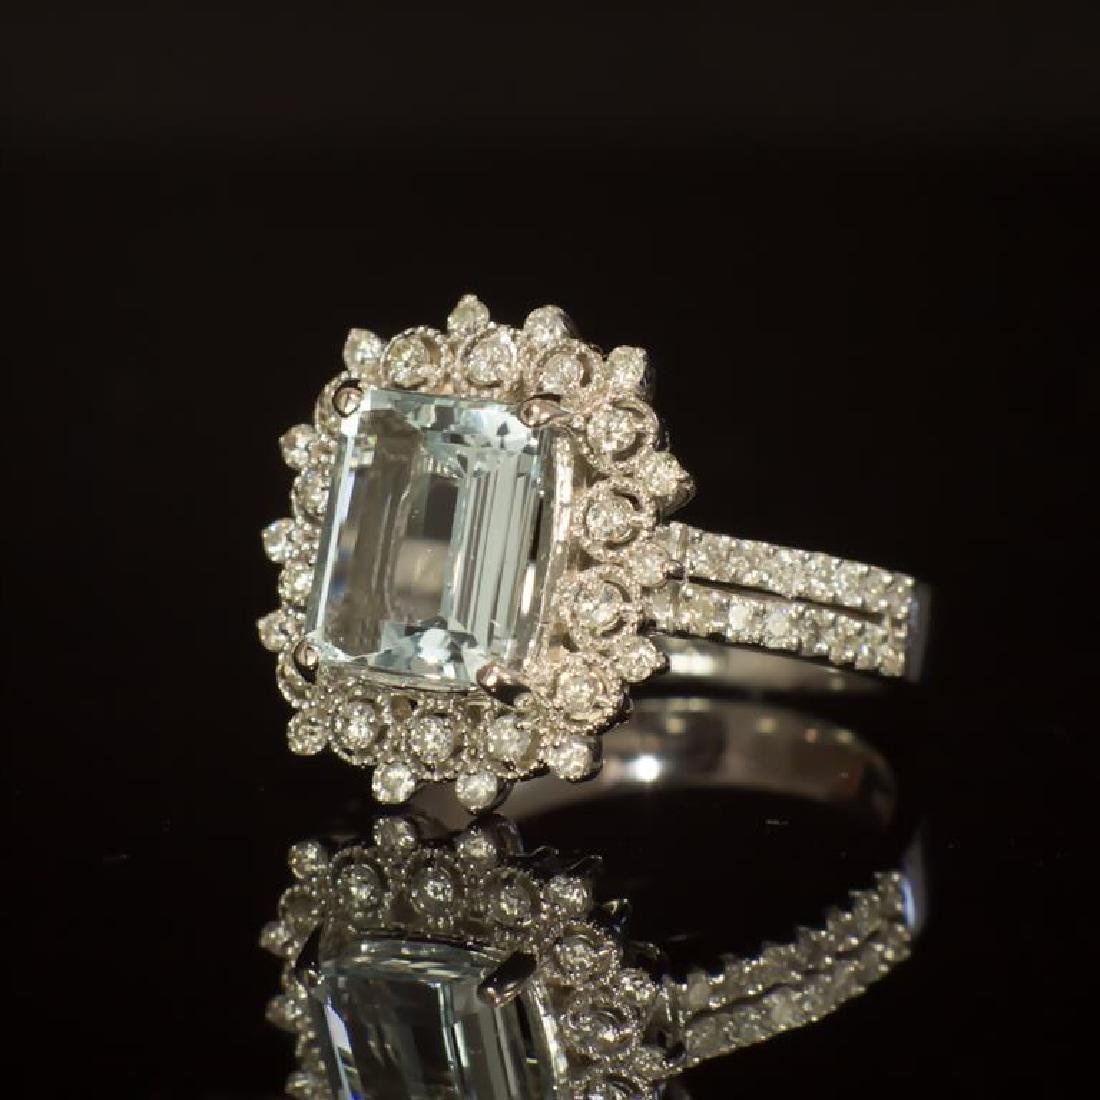 14K Gold 2.42ct Aquamarine 0.79ct Diamond Ring - 2